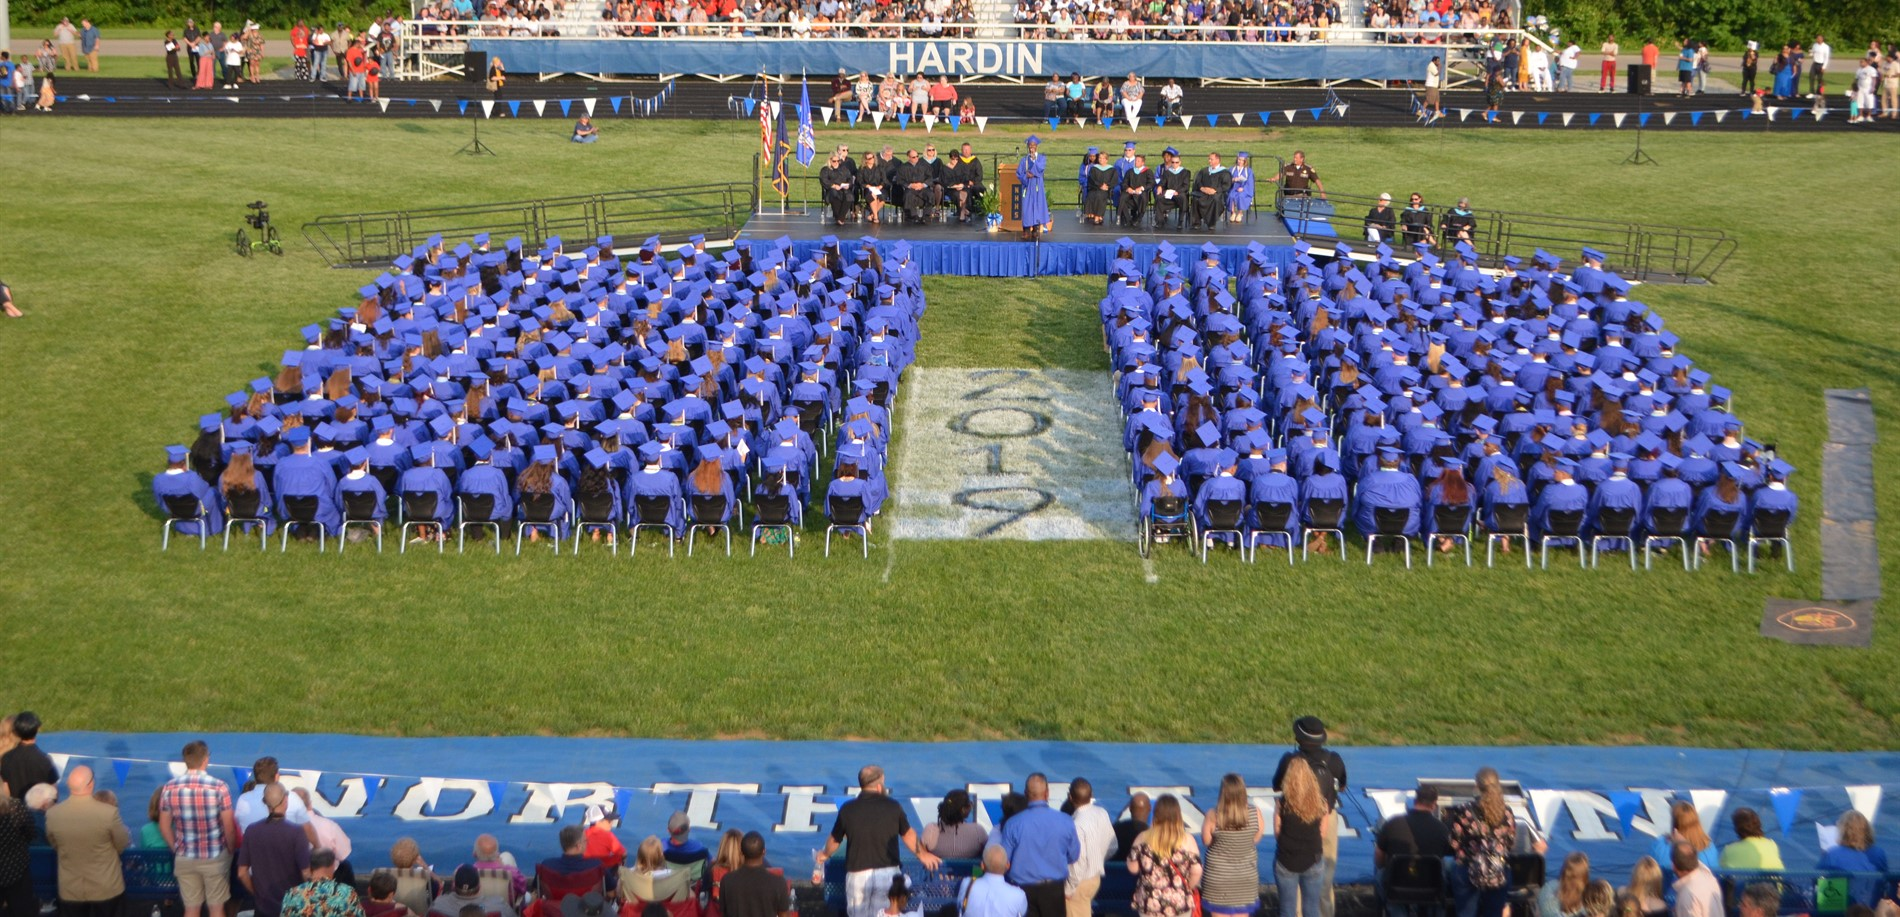 North Hardin High School Class of 2019